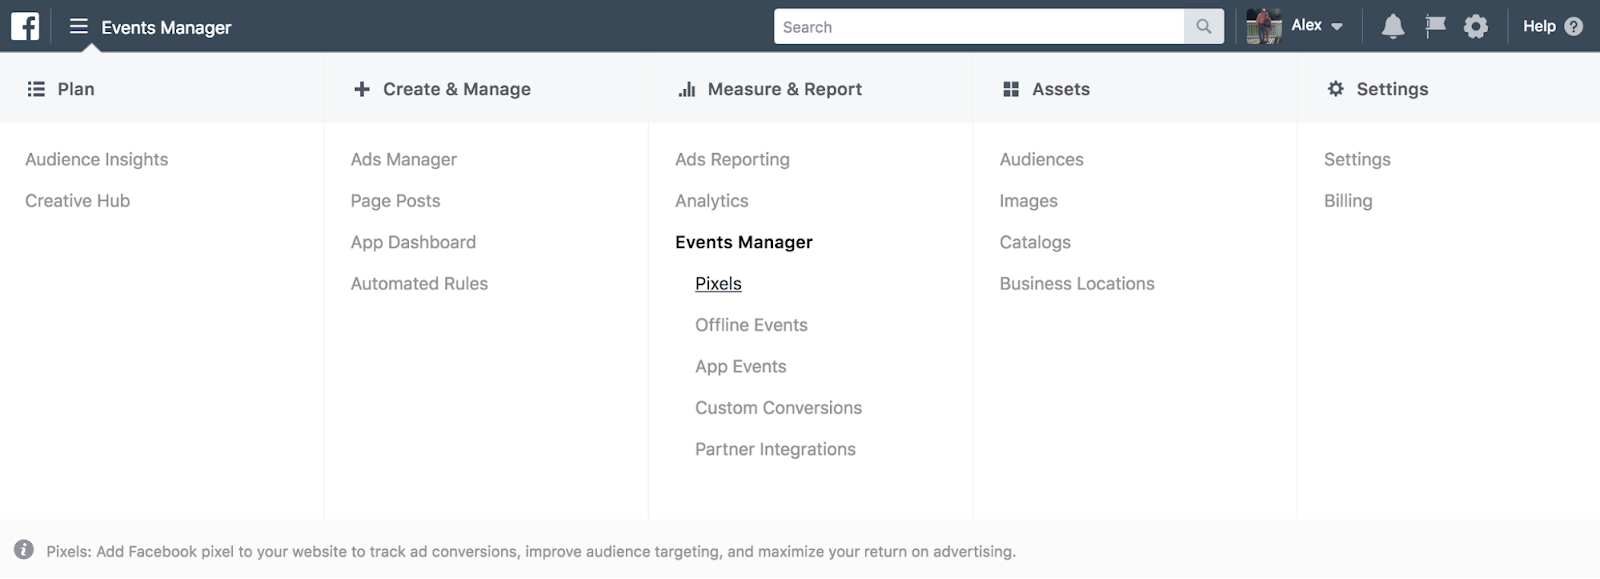 Facebook Events Manager dashboard